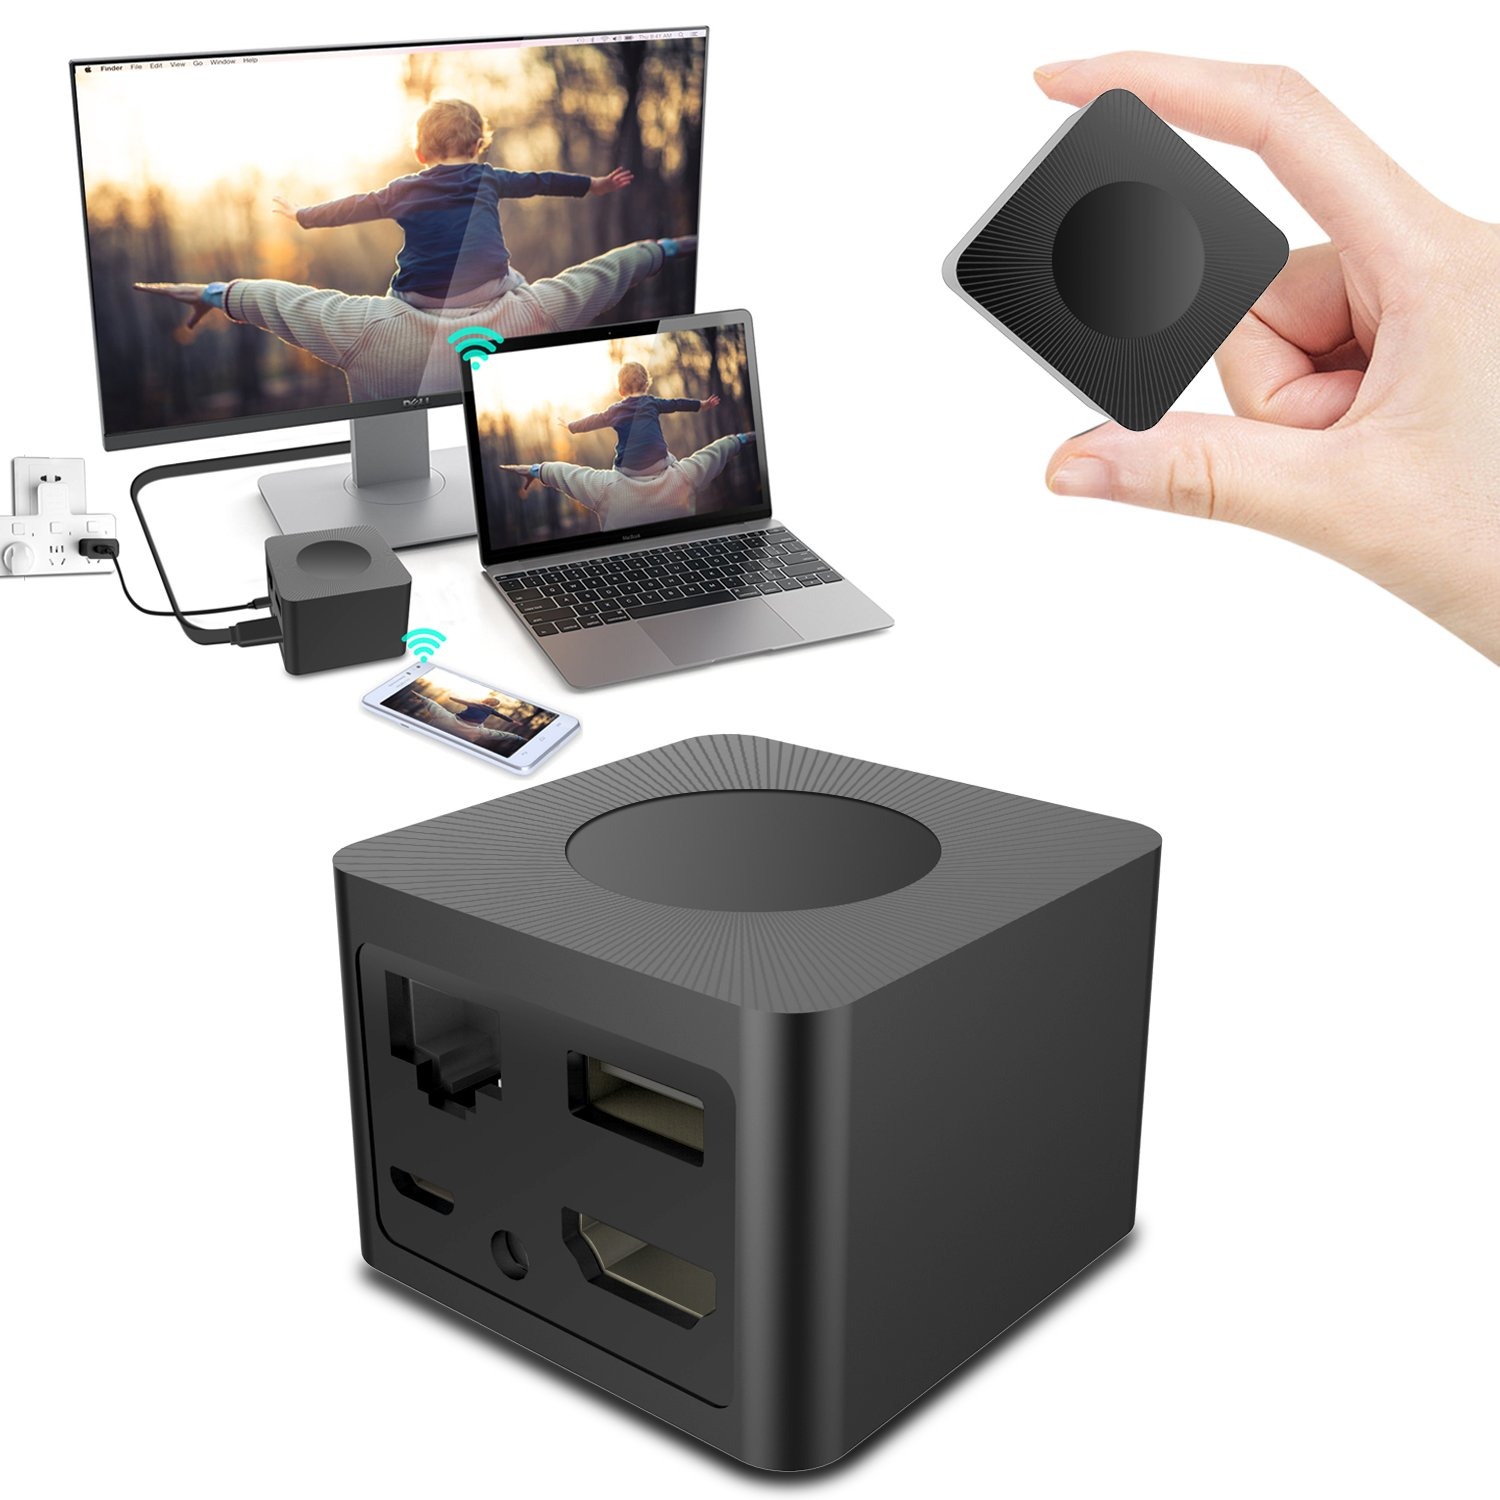 WiFi Wireless Mini Display Receiver Dongle, Venoro 1080P Full HD + AV Dual Output Adapter Support Airplay Miracast DLNA for IOS / Android / Windows / Mac